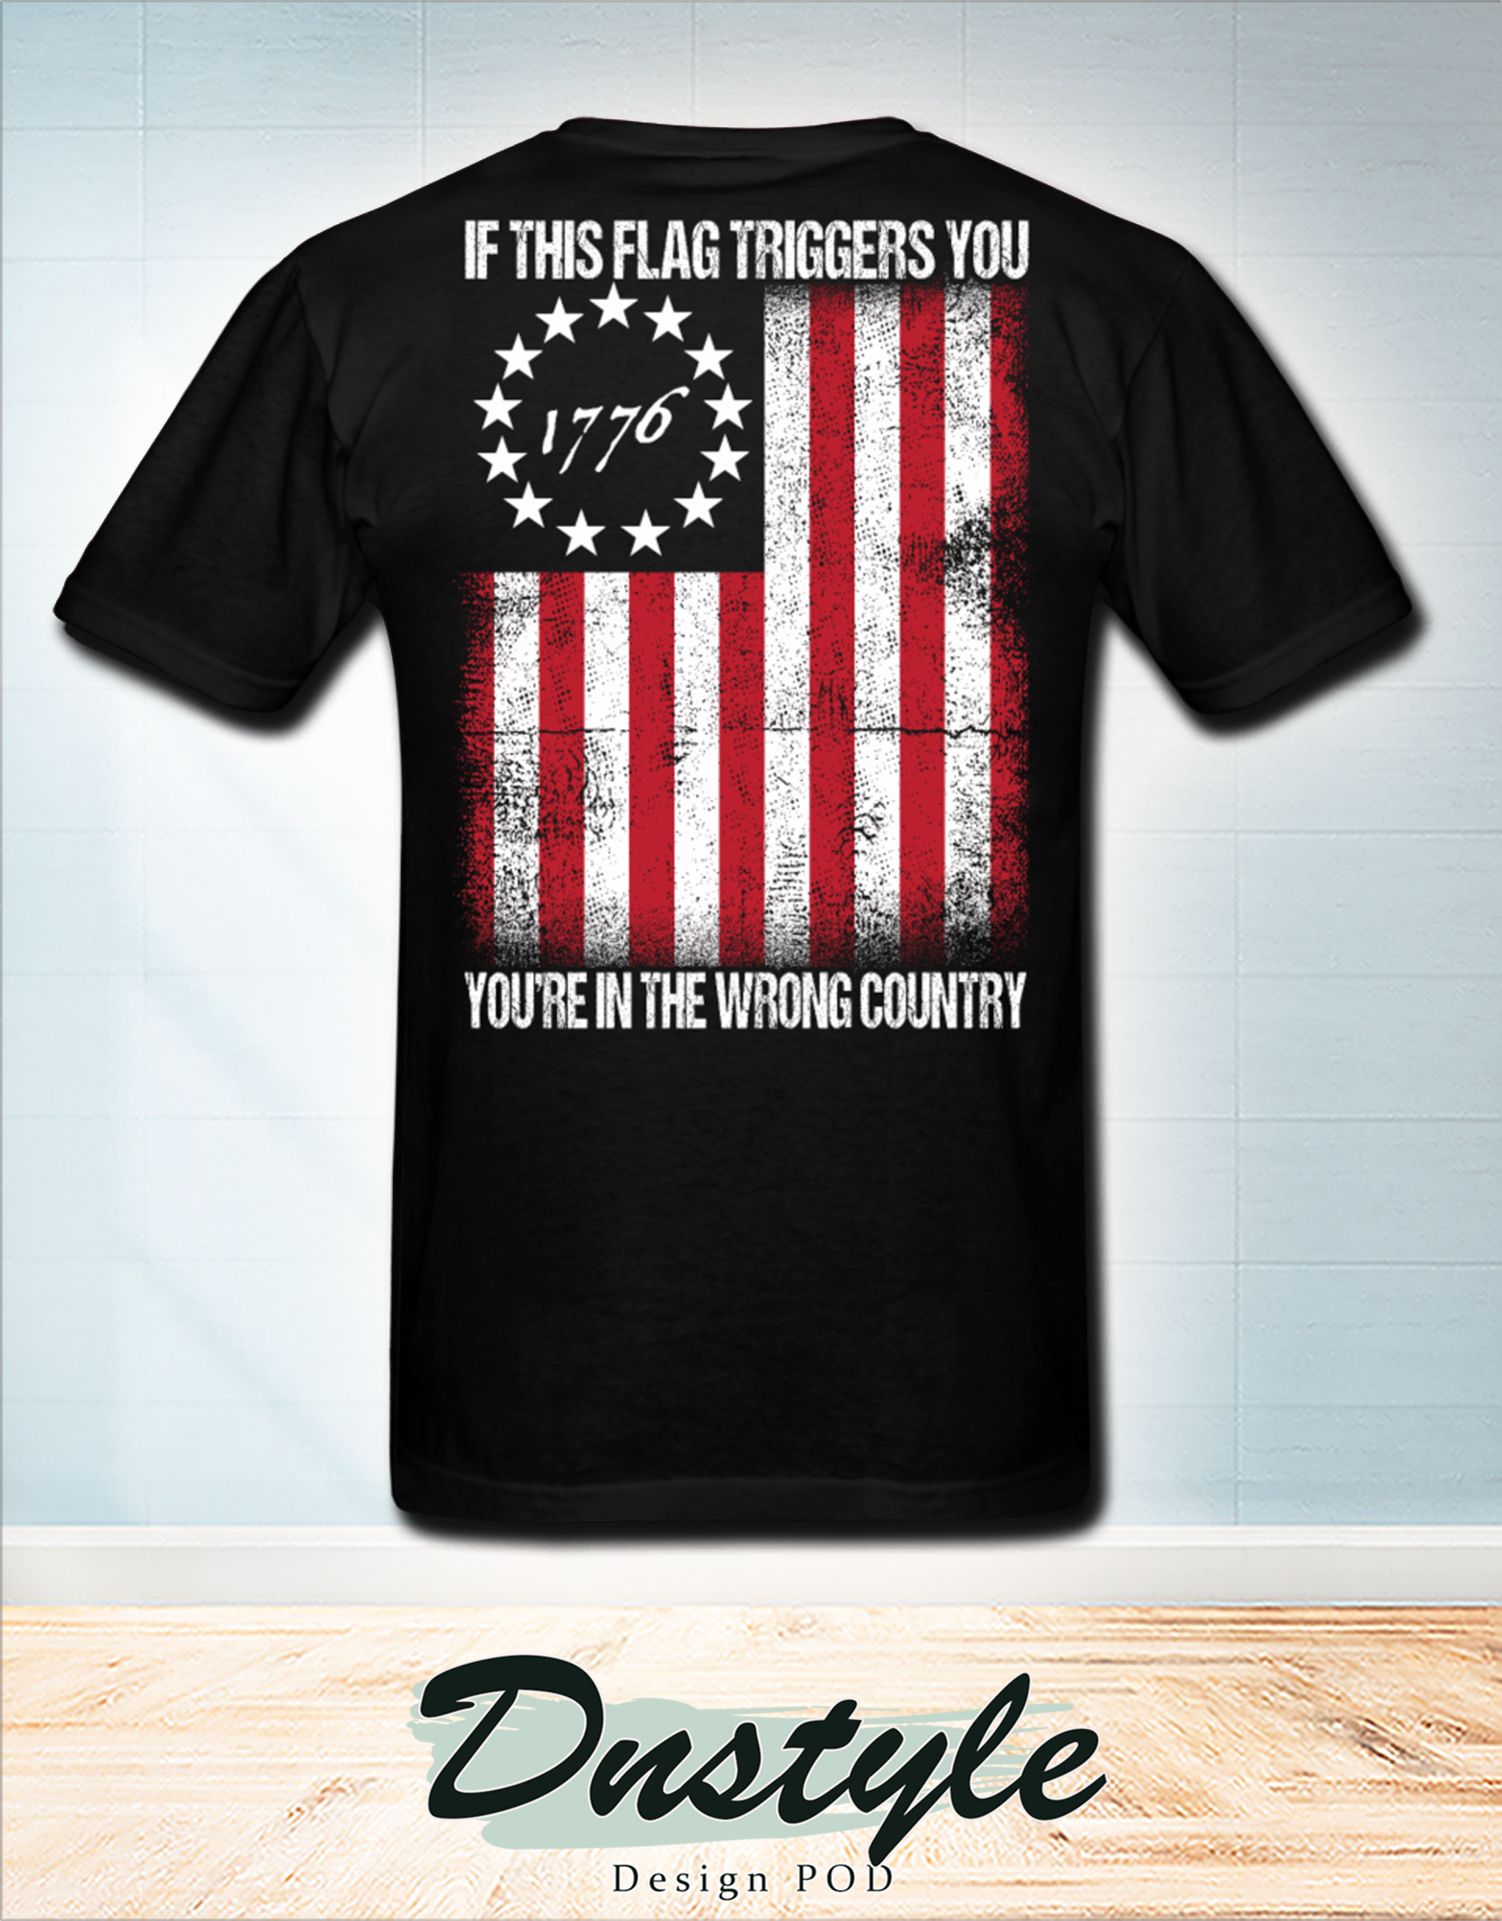 1776 if this flag trigged you you're in the wrong country american flag t-shirt